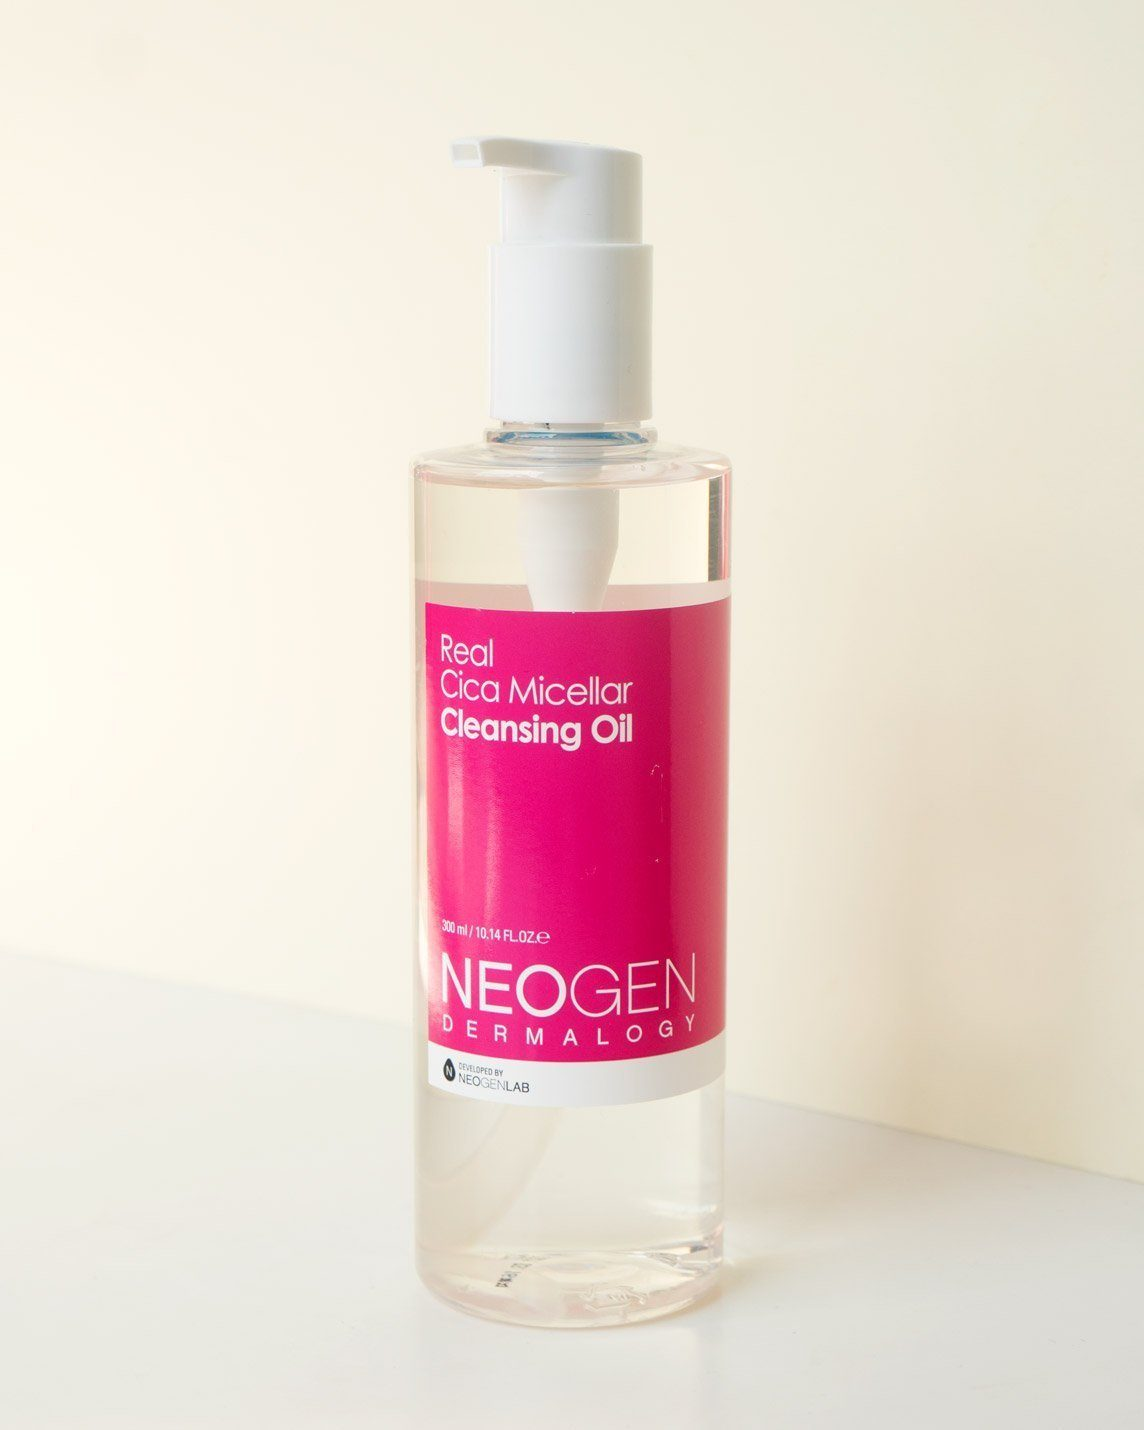 Real Cica Micellar Cleansing Oil Product picture